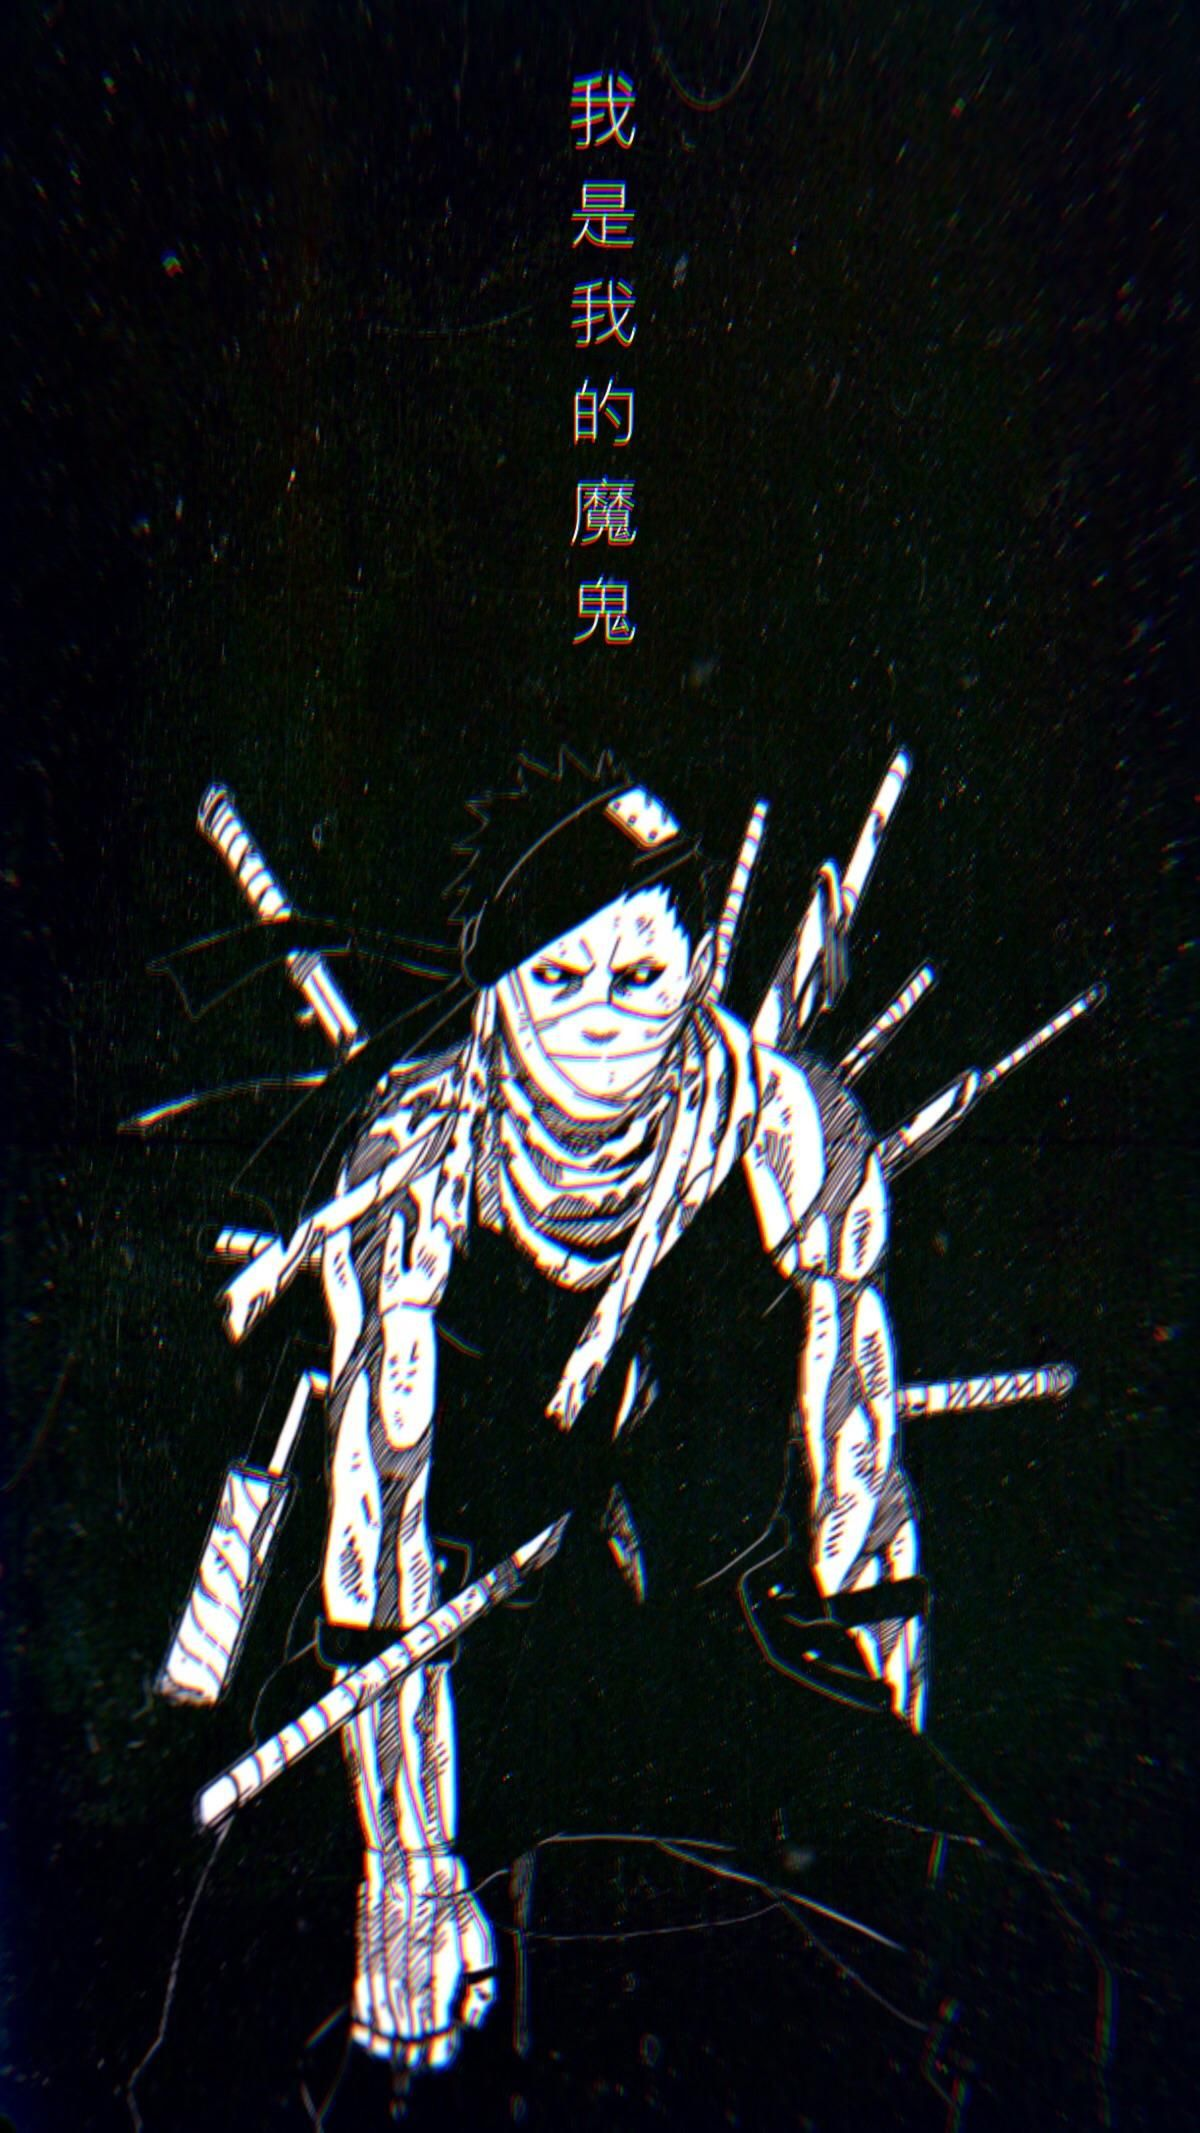 Hi Im Back Again With A Zabuza Wallpaper Hope You Arent Tired Of My Shit Yet D Naruto Ani Wallpaper Naruto Shippuden Naruto Shippuden Anime Naruto Wallpaper